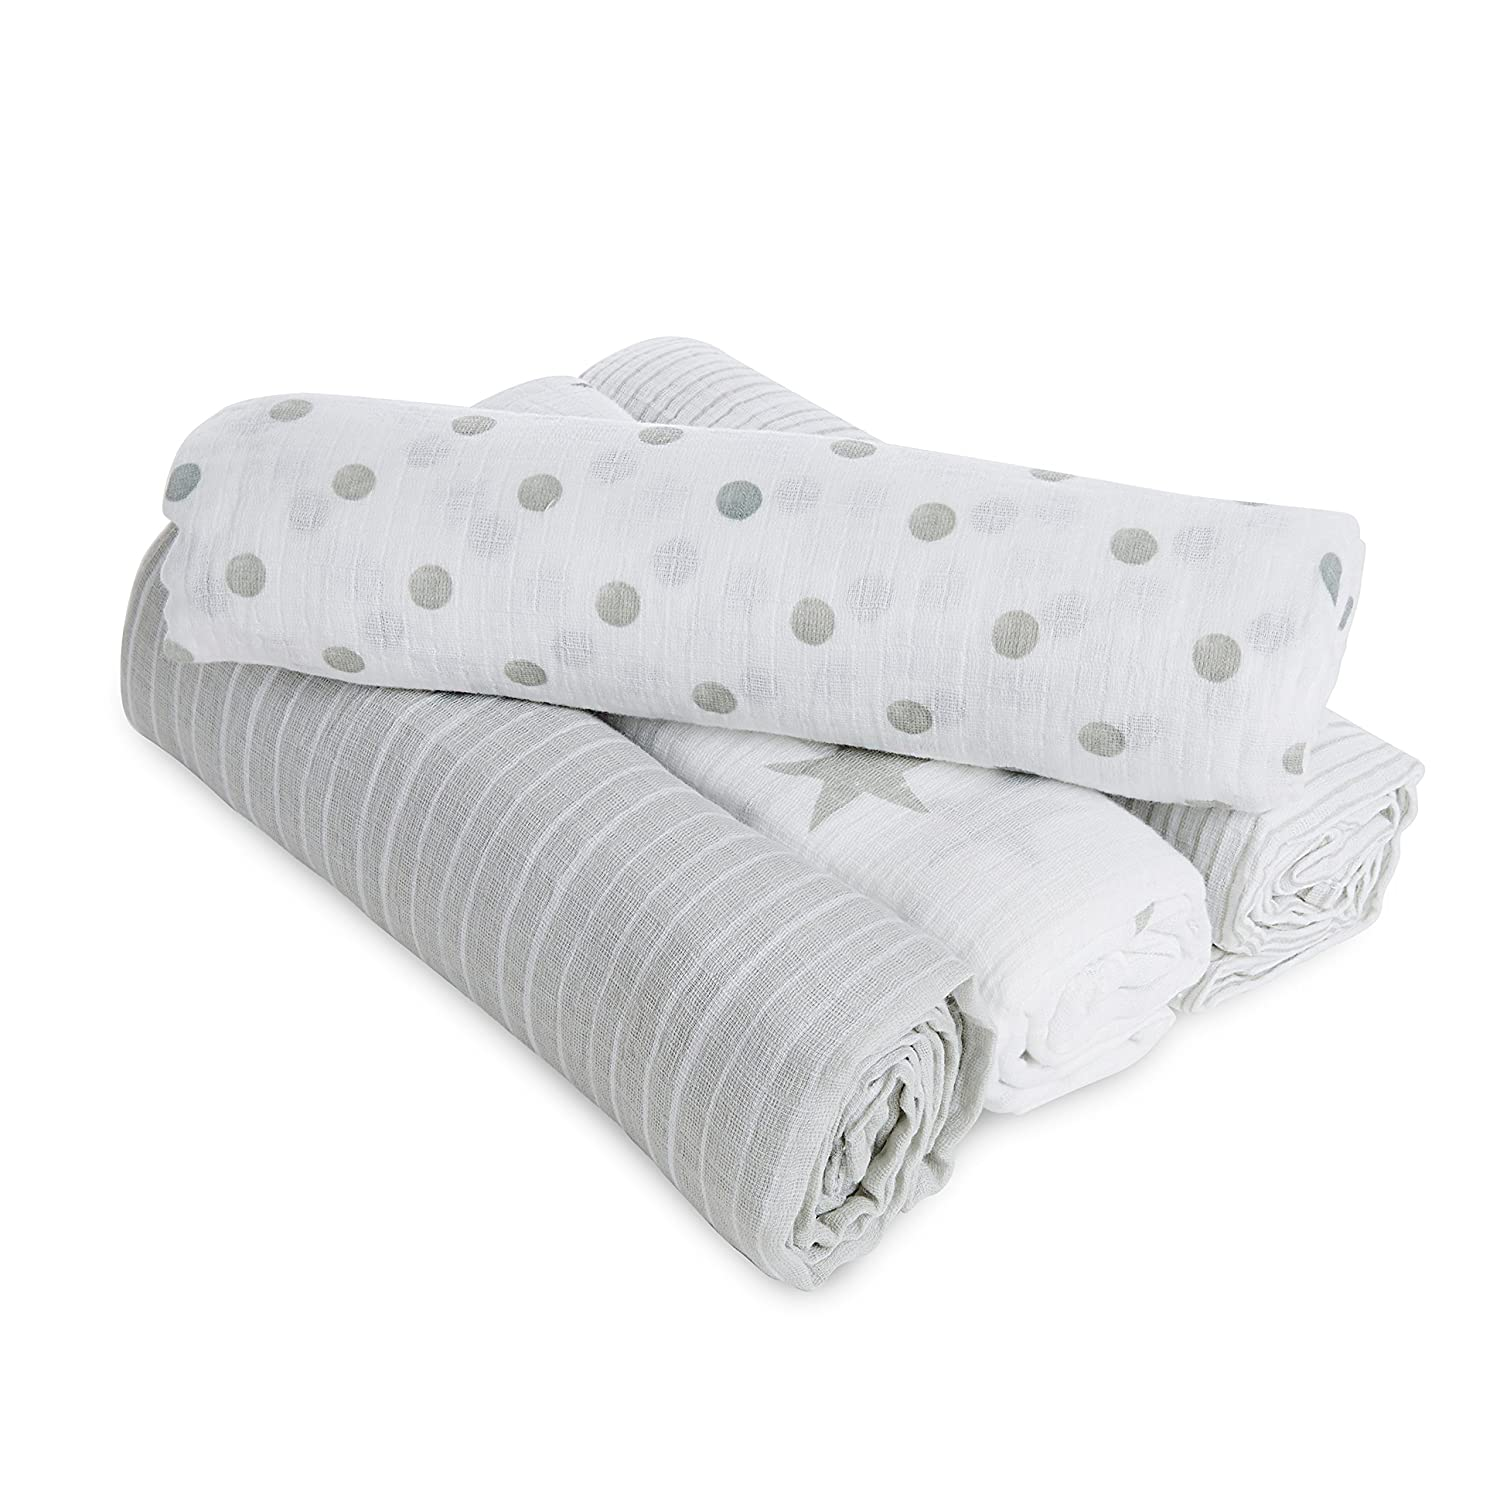 aden by aden + anais swaddle, 100% cotton muslin, 112cm X 112cm, 4 pack, dusty Aden and Anais G3103B